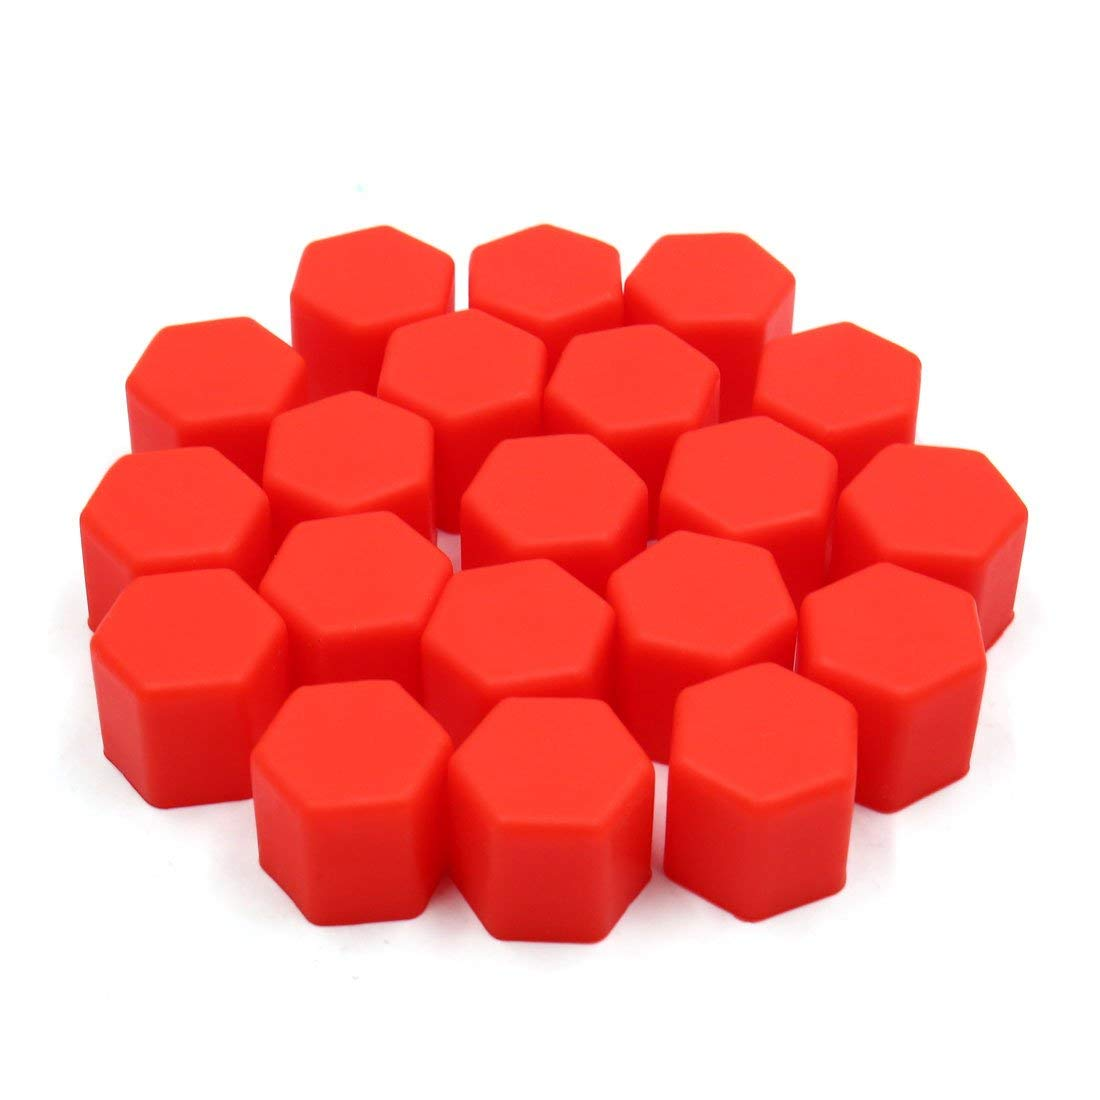 uxcell 20 Pcs 17mm Red Silicone <font><b>Car</b></font> <font><b>Wheel</b></font> <font><b>Hub</b></font> Screw <font><b>Cover</b></font> Bolt Protector Nut Cap image